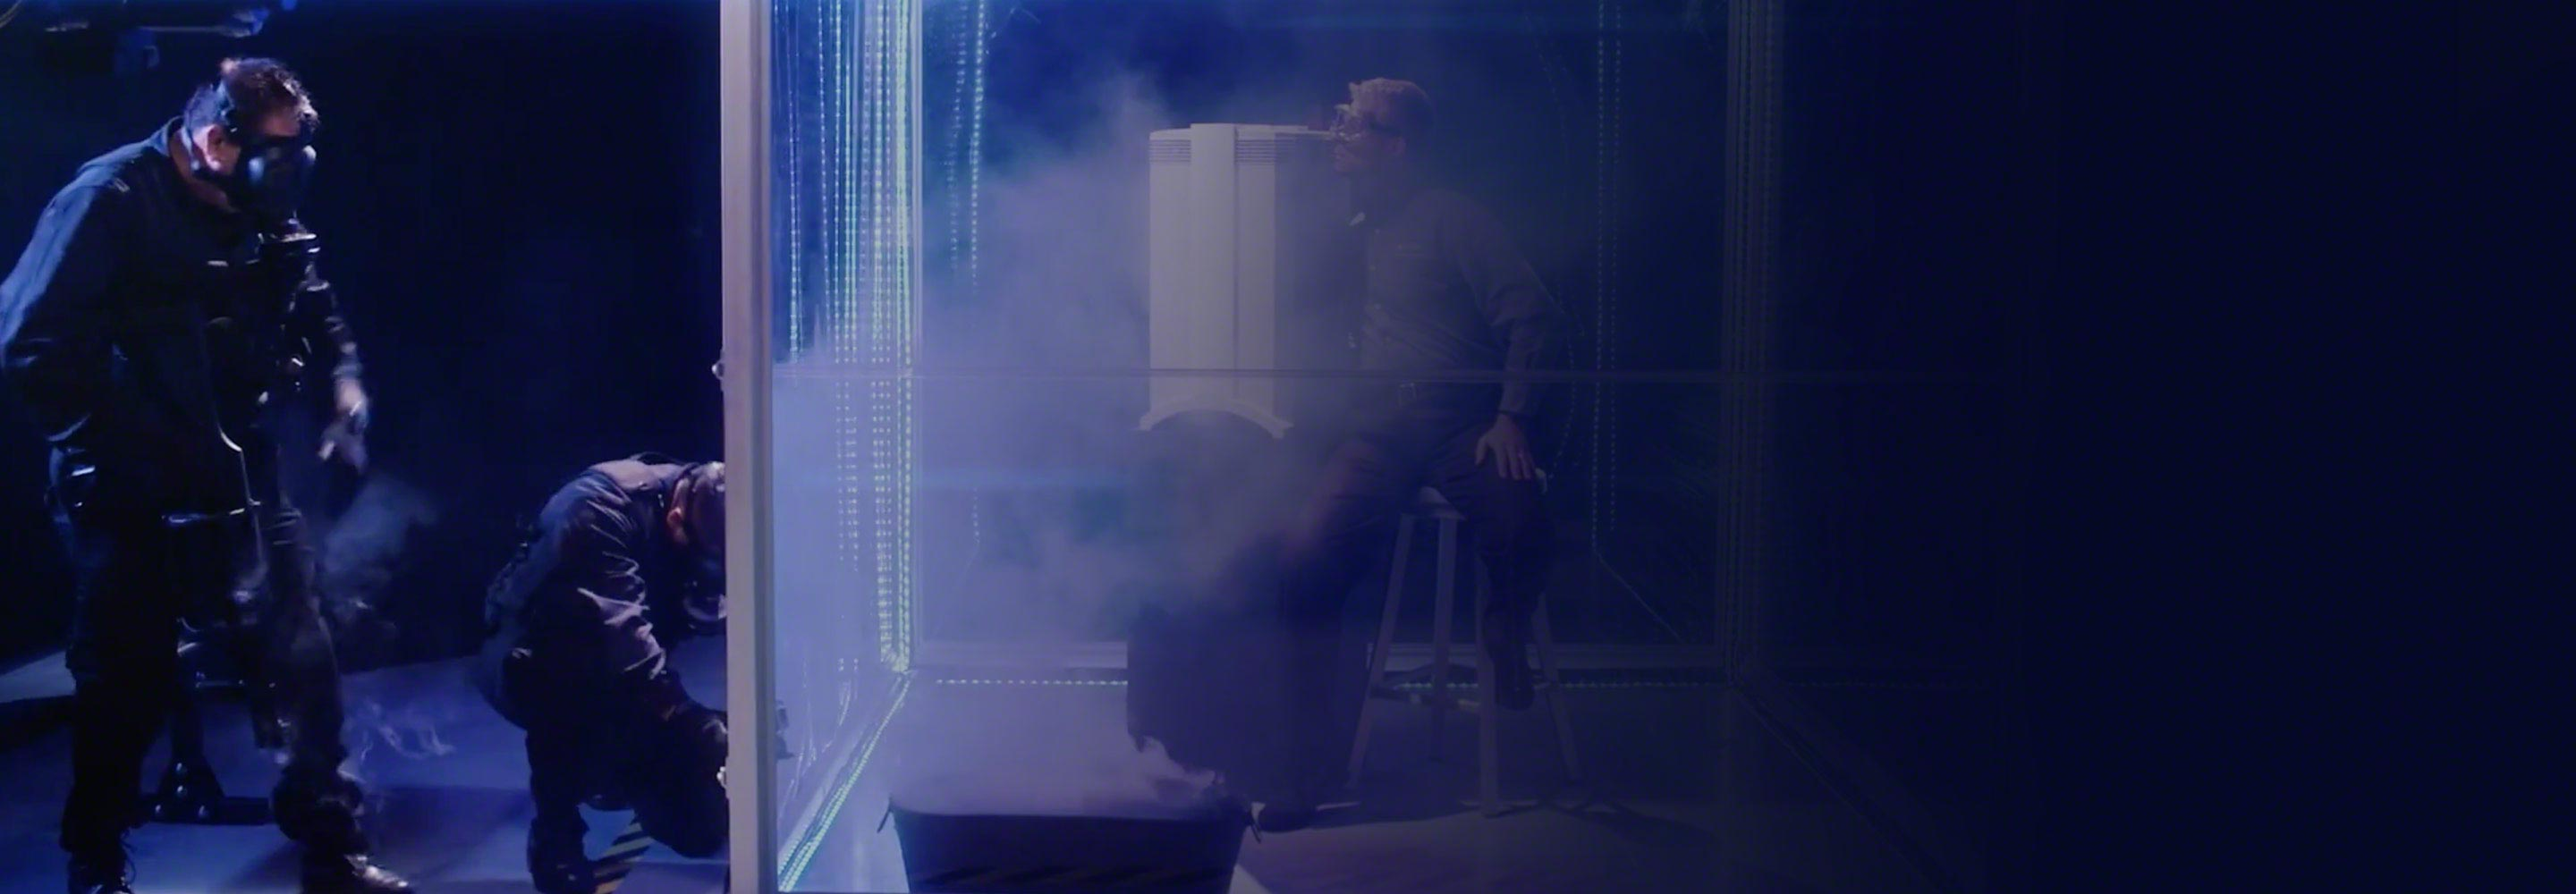 HealthPro Plus safely clearing a smoke chamber